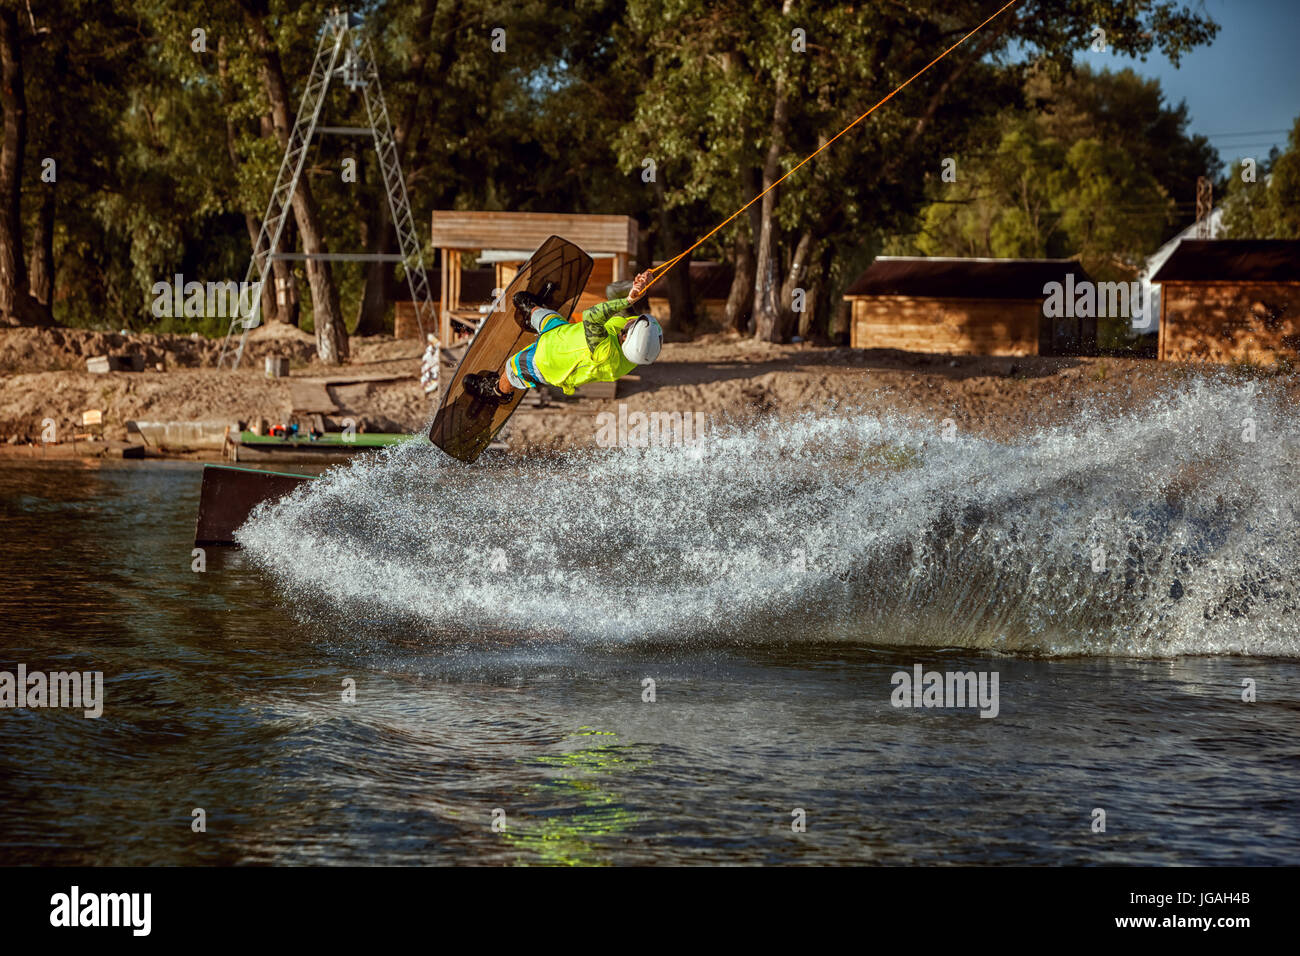 Summer sport wakeboarding. Skating and jumping on the water on the board. - Stock Image